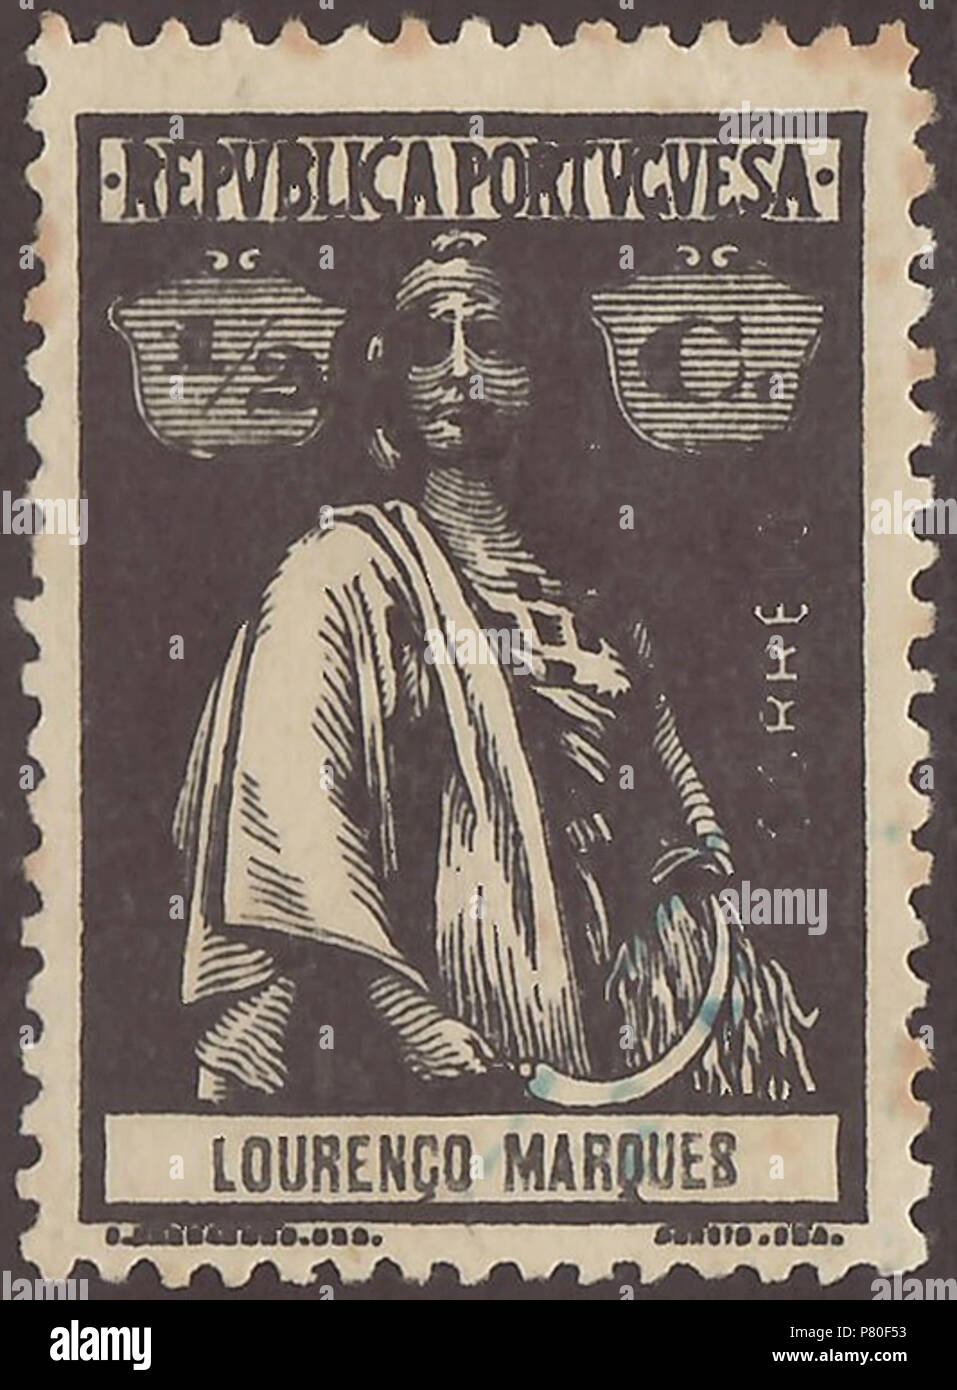 Stamp of Lourenço Marques (Portuguese Mozambique); 1914; definitive stamp of the issue 'Ceres - colonial issues'; stamp postmarked Stamp: Michel: No. 118; Yvert et Tellier: No. 118 Color: black / black on 'reaper-coated' paper (Note: In the anglophone literature is sometime used the term 'reaper-coated' as description for the paper of these stamps without to amplify this. Probably, it's about an early process of paper coating by using of polymeric carbohydrate on basis of starch obtained from staple-food plants ('reaper plants').) Watermark: none Nominal value: ½ C. (Centavo) Postage validity: - Stock Image